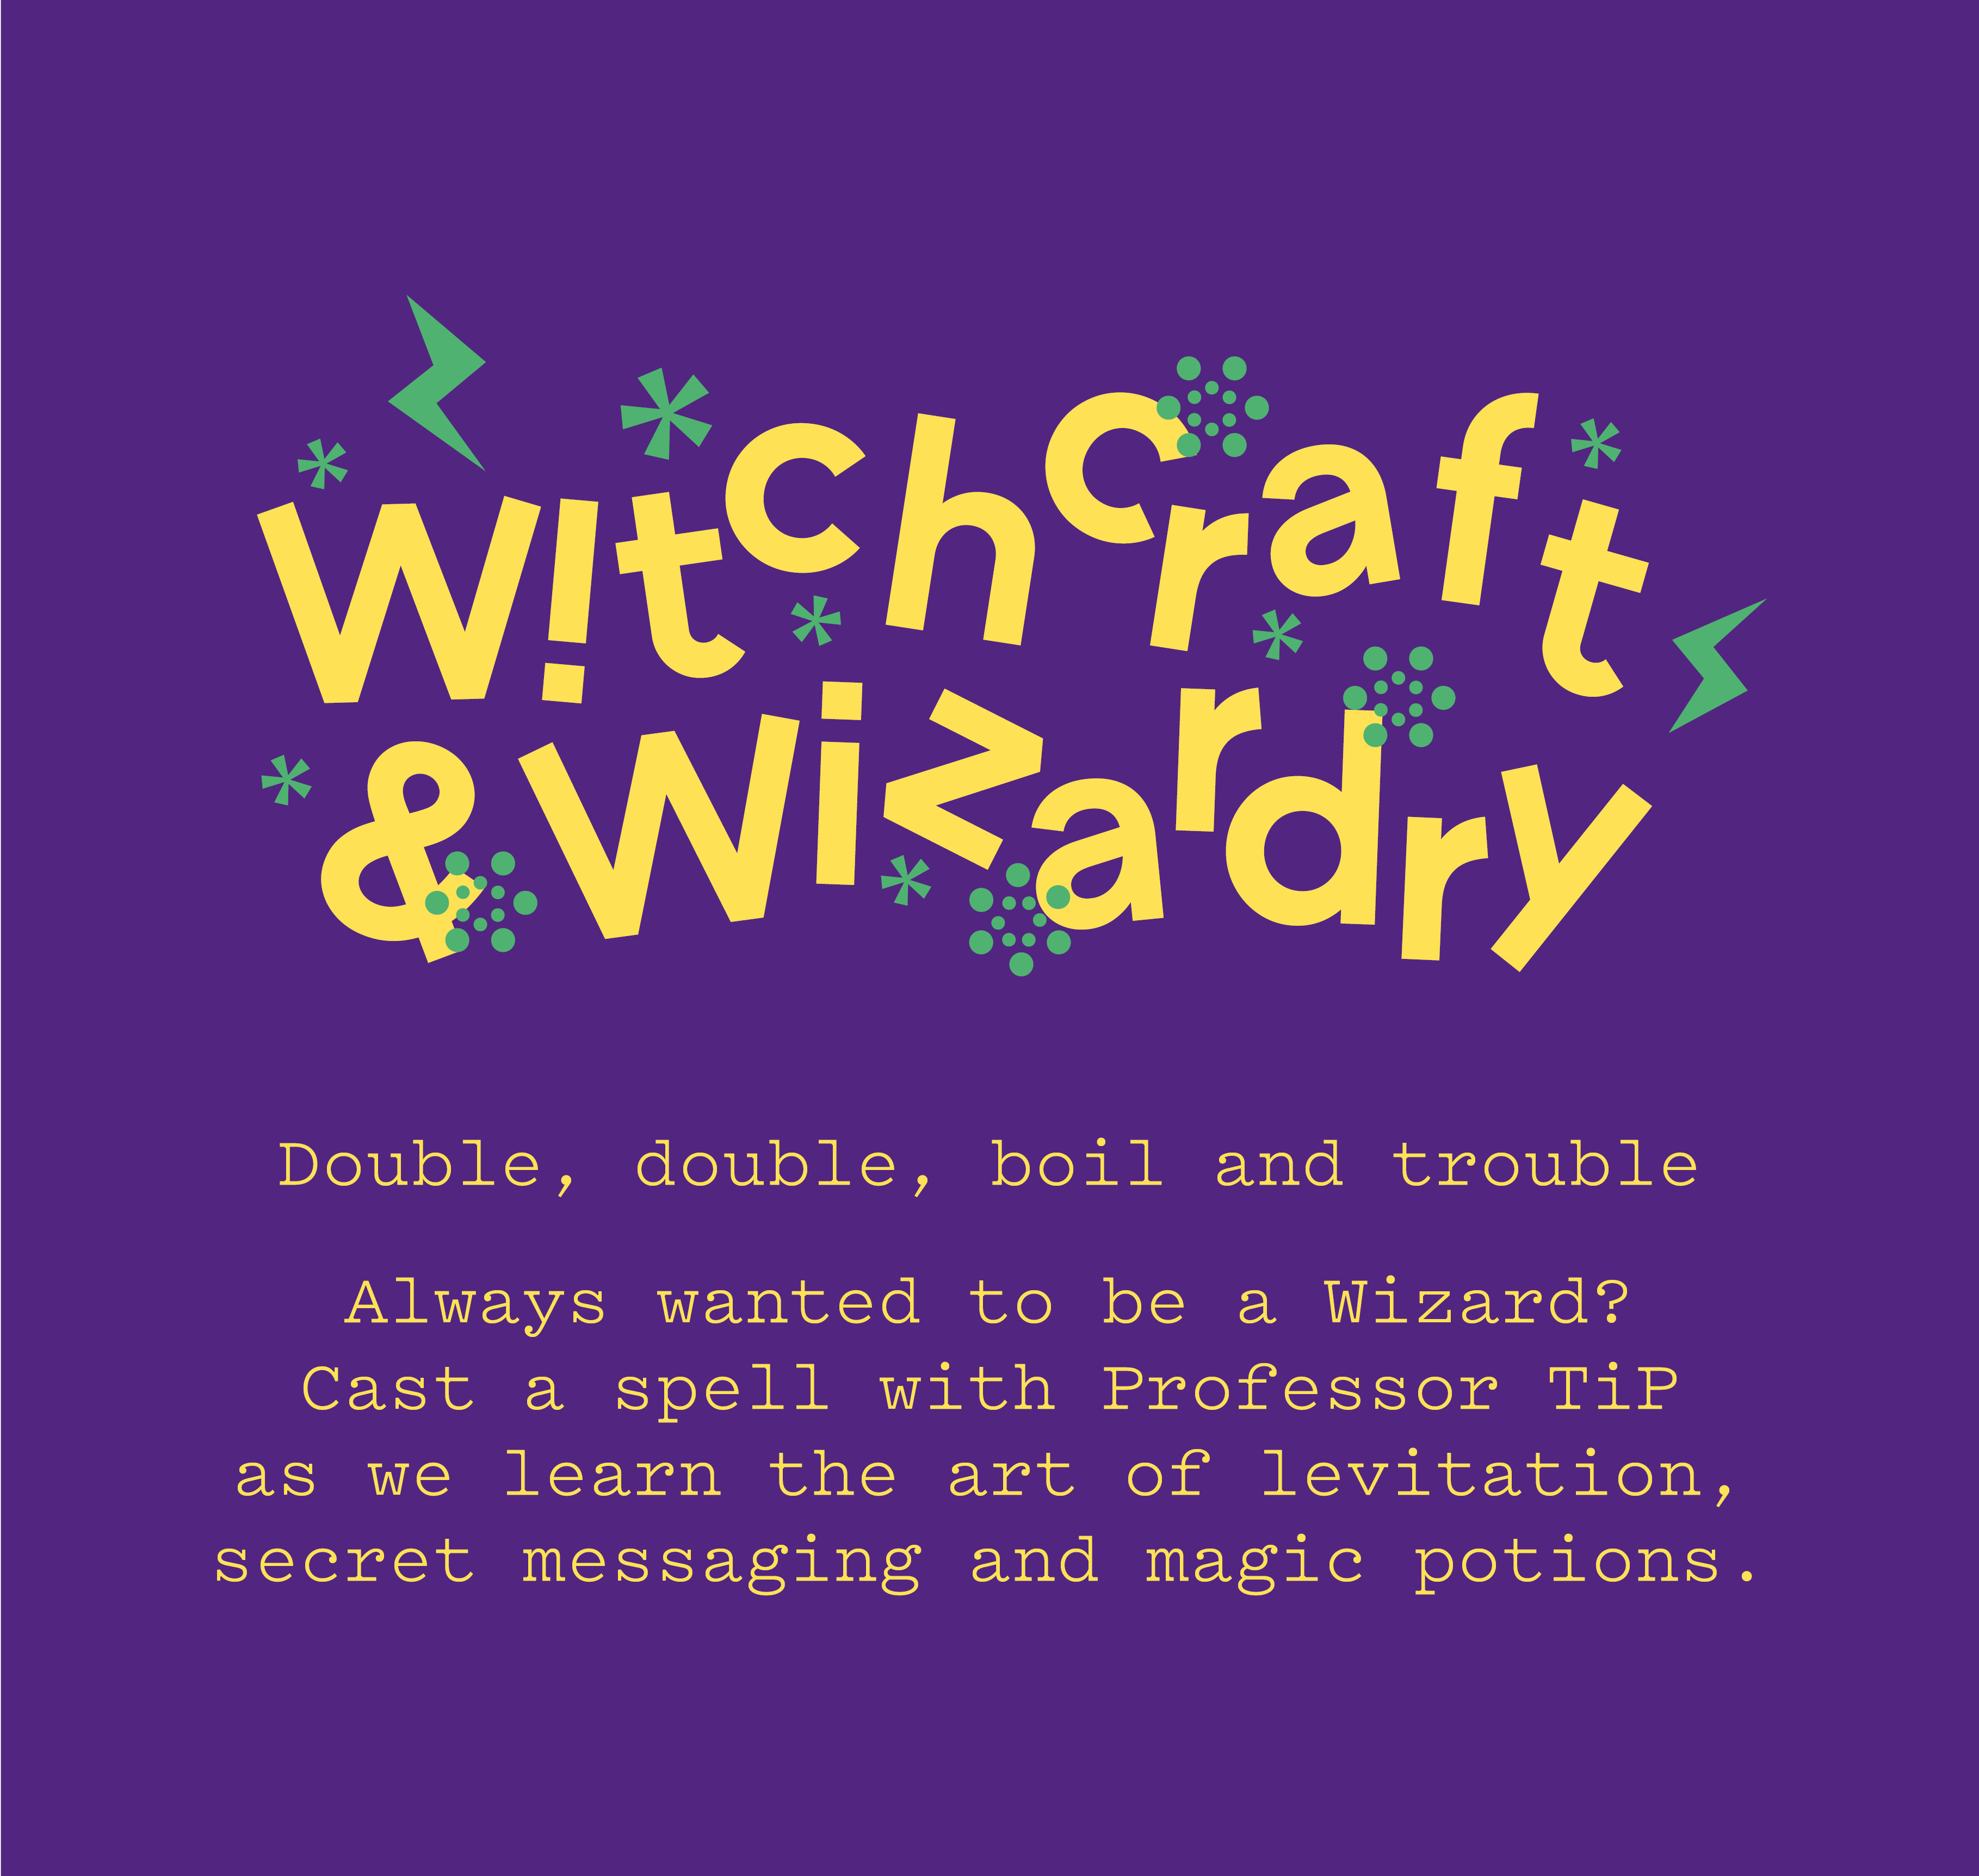 Party-wichcraft&wizardry-single